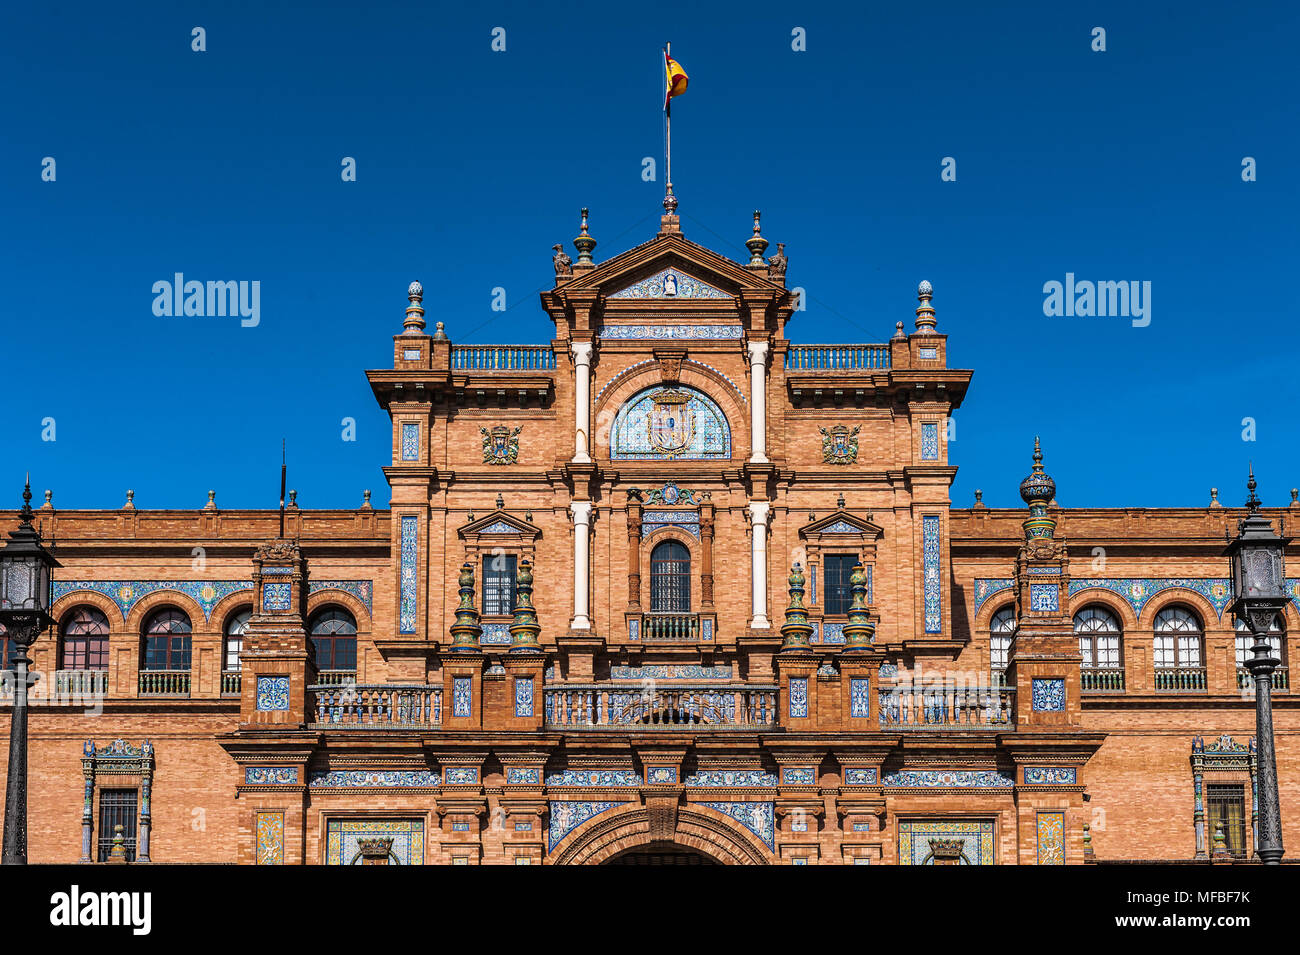 Central par of the  building at the Plaza de Espana in Seville, Andalusia, Spain. It's example of the Renaissance Revival style in Spanish architectur - Stock Image